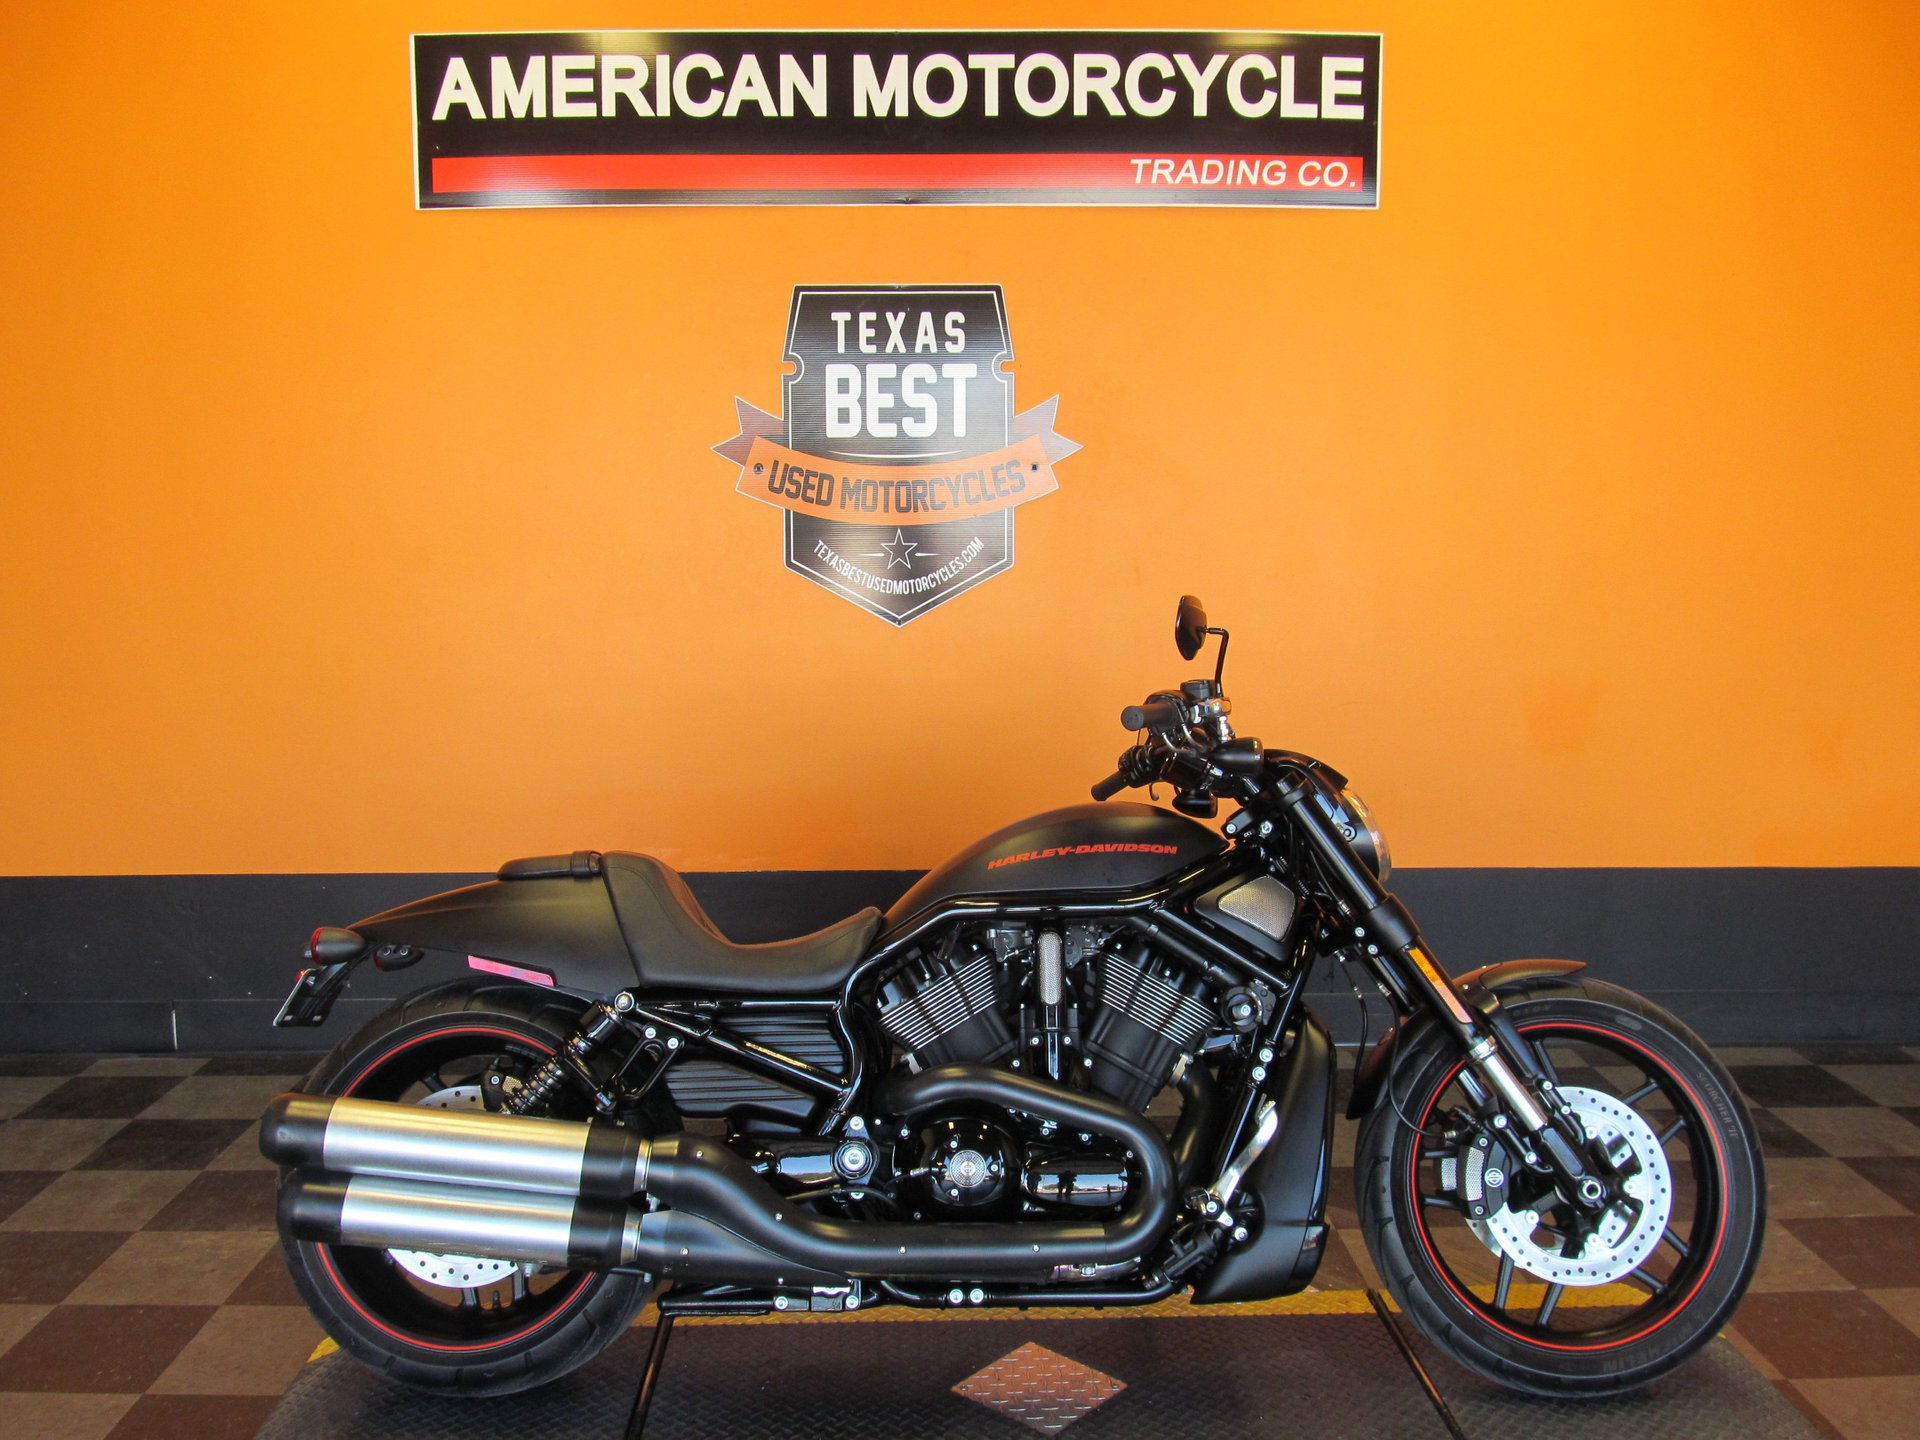 2013 harley davidson v rod night rod special vrscdx